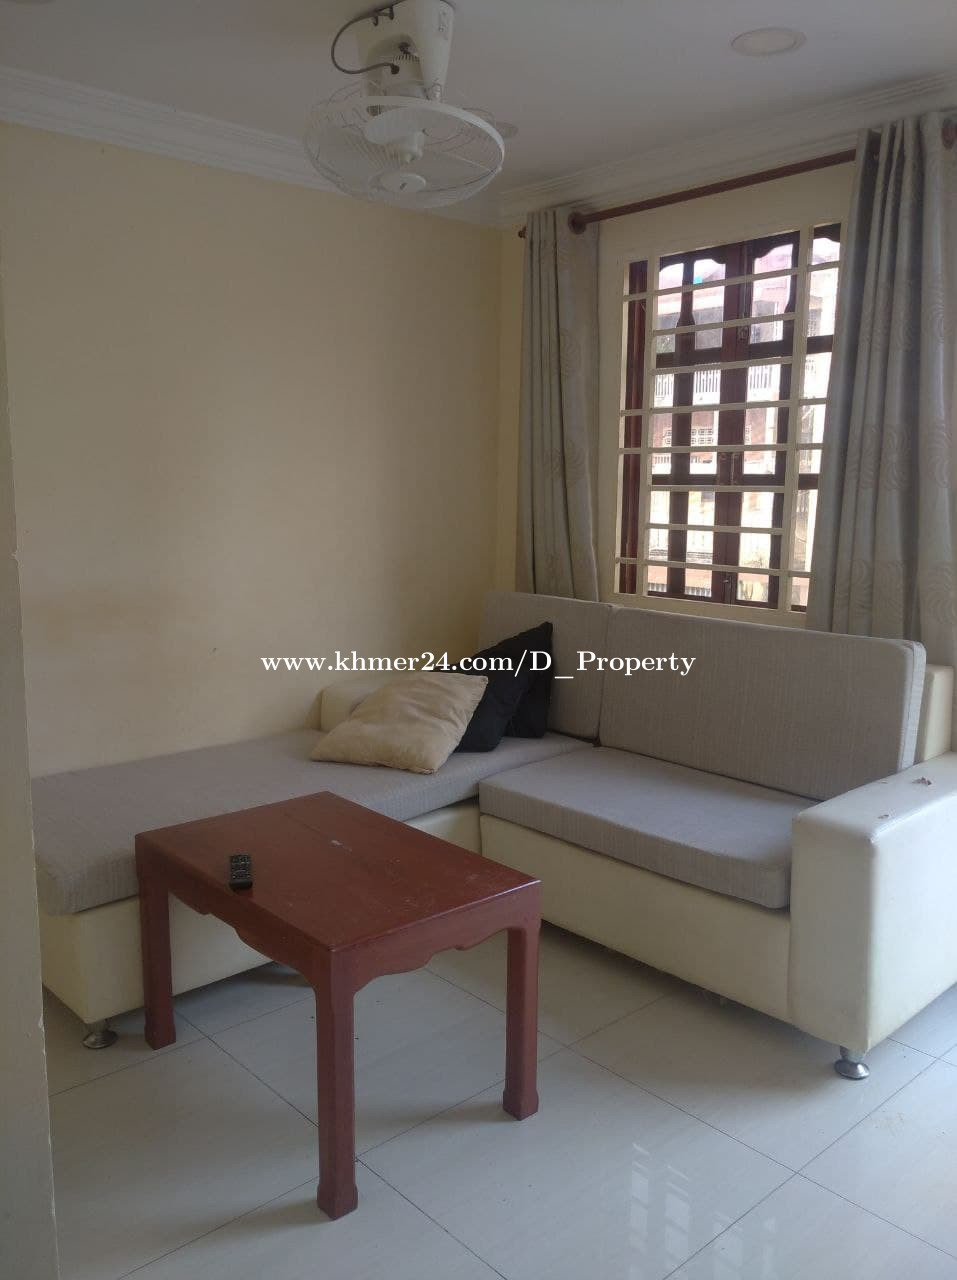 Apartment for Rent (2Bedrooms; Boeung Pralit)